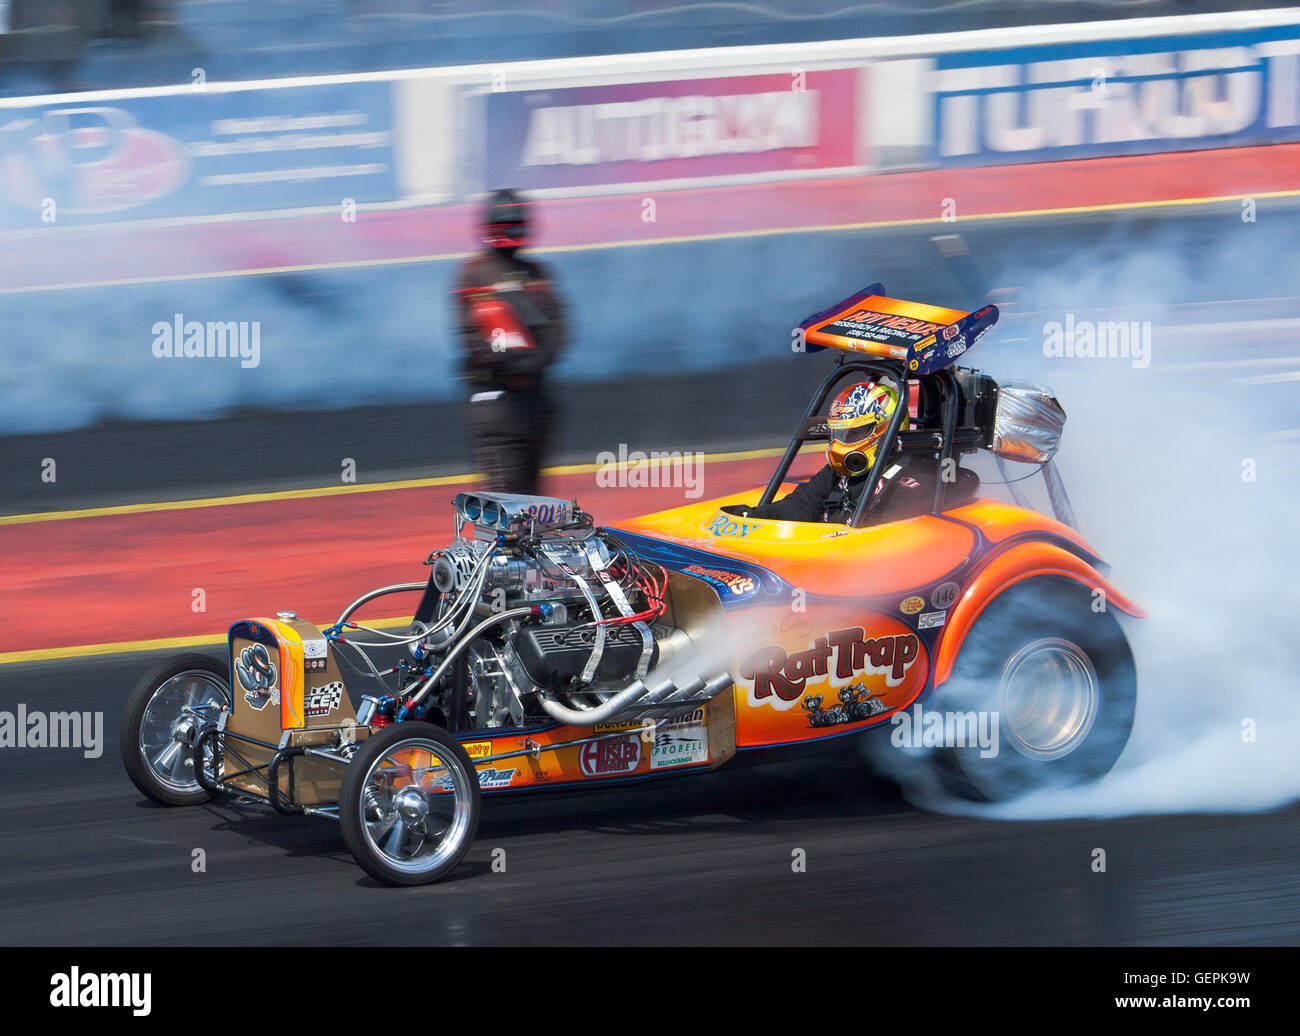 Dragstalgia event at Santa Pod. Ron Hope warming his tyres in his vintage Fuel Altered dragster called Rat Trap. - Stock Image